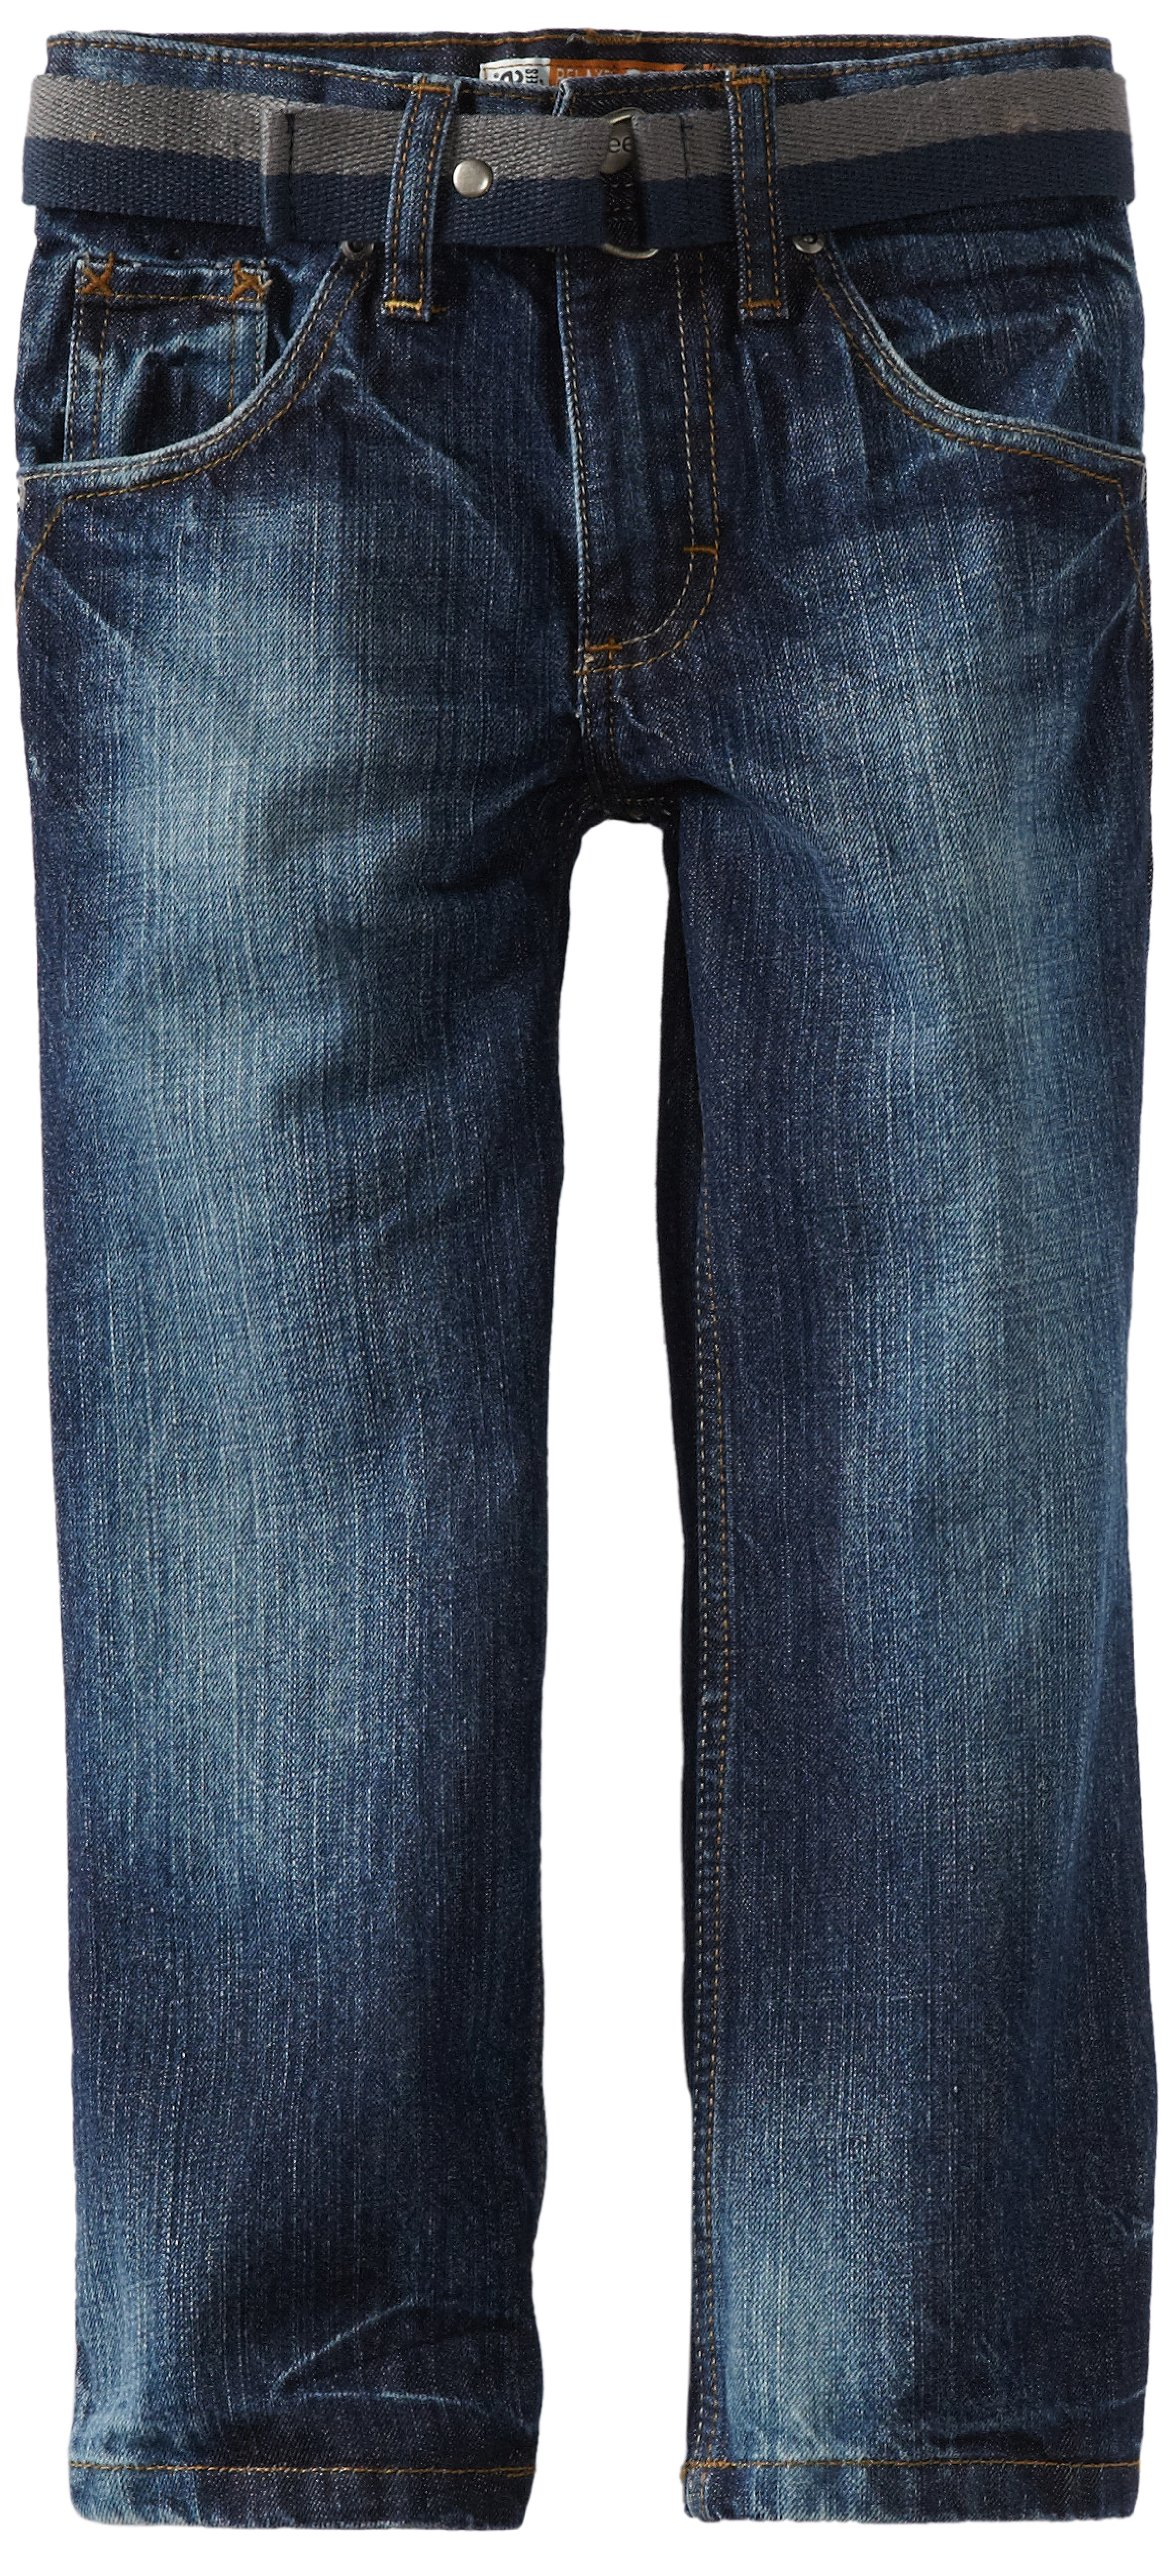 LEE Little Boys' Dungarees Relaxed Bootcut Jeans, Bayou, 5 Slim